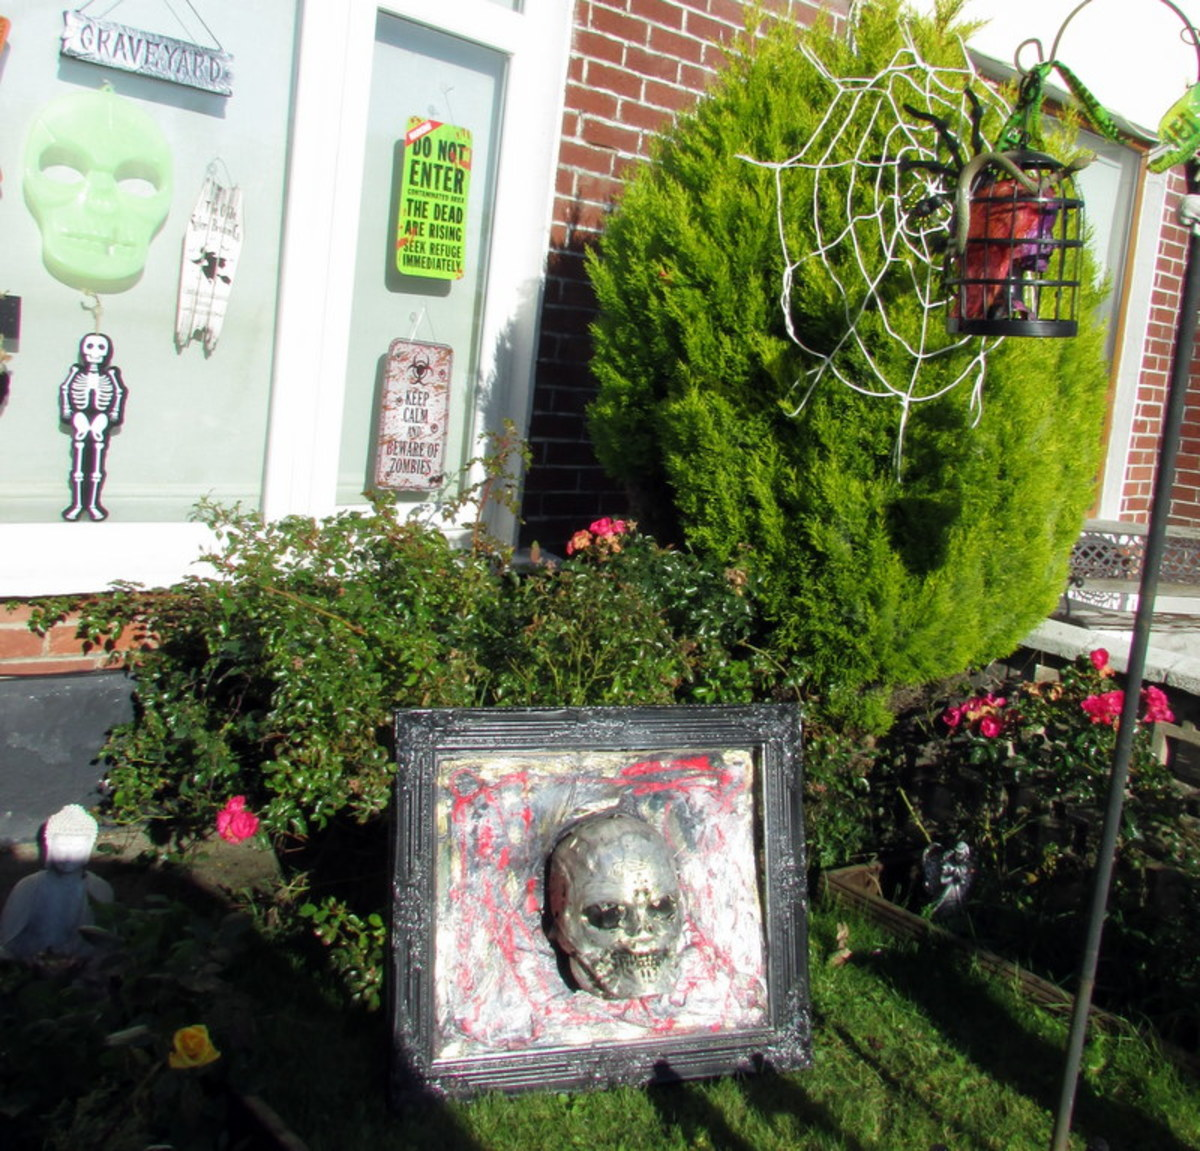 This is the blood soaked skull decoration displayed outside for Halloween.